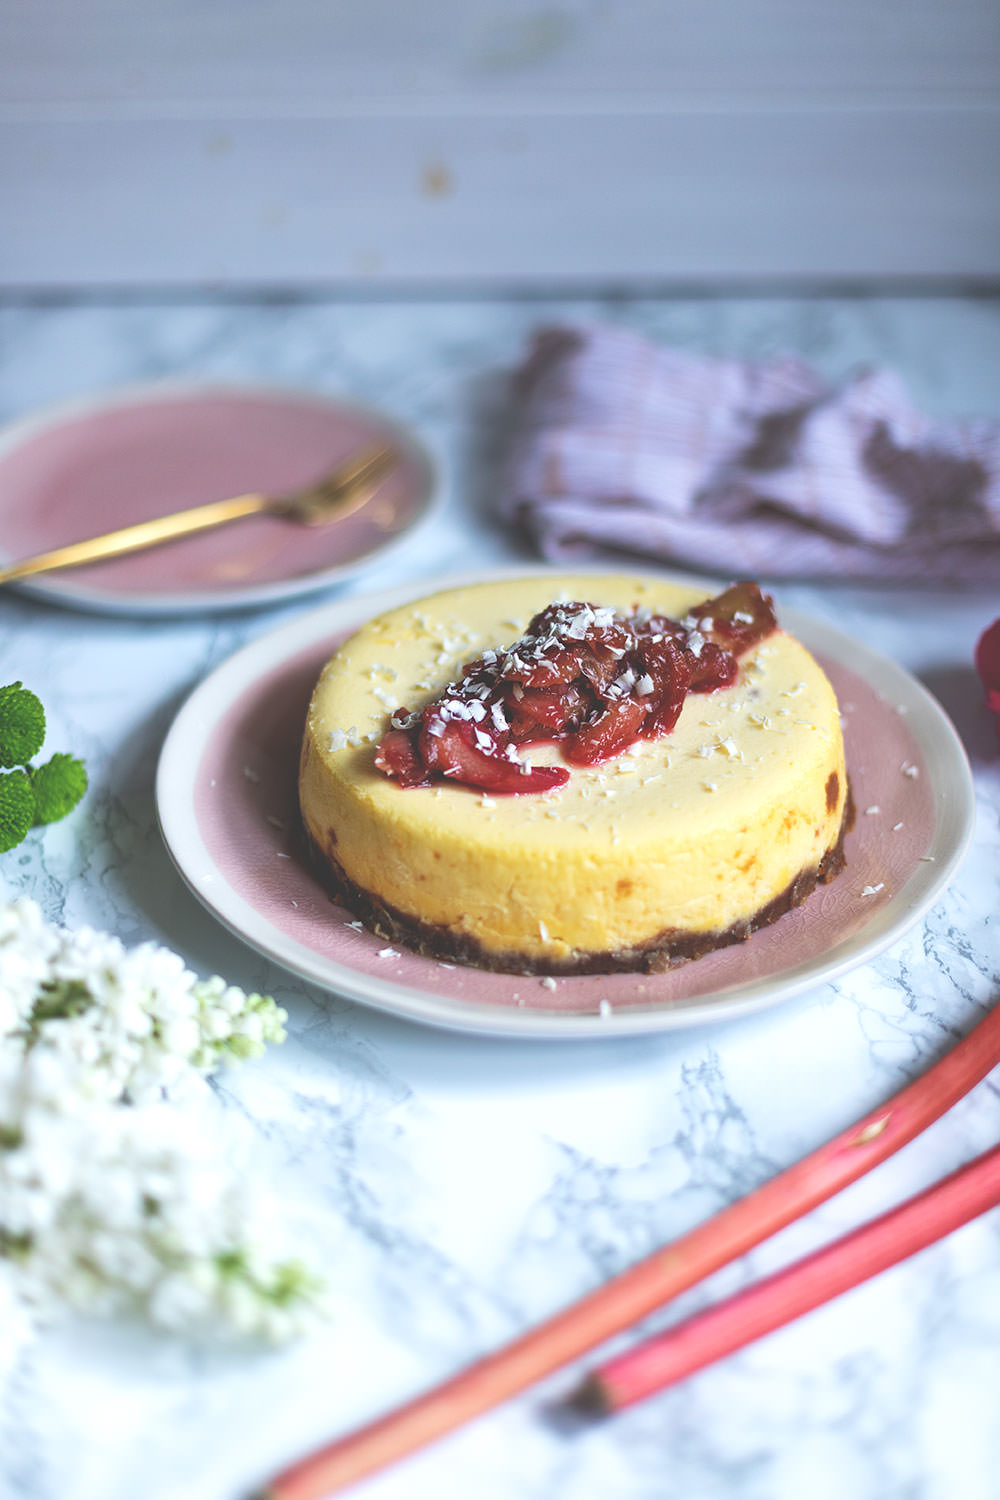 Rhabarber Cheesecake Aus Dem Varoma Thermomix Donnerstag Moey S